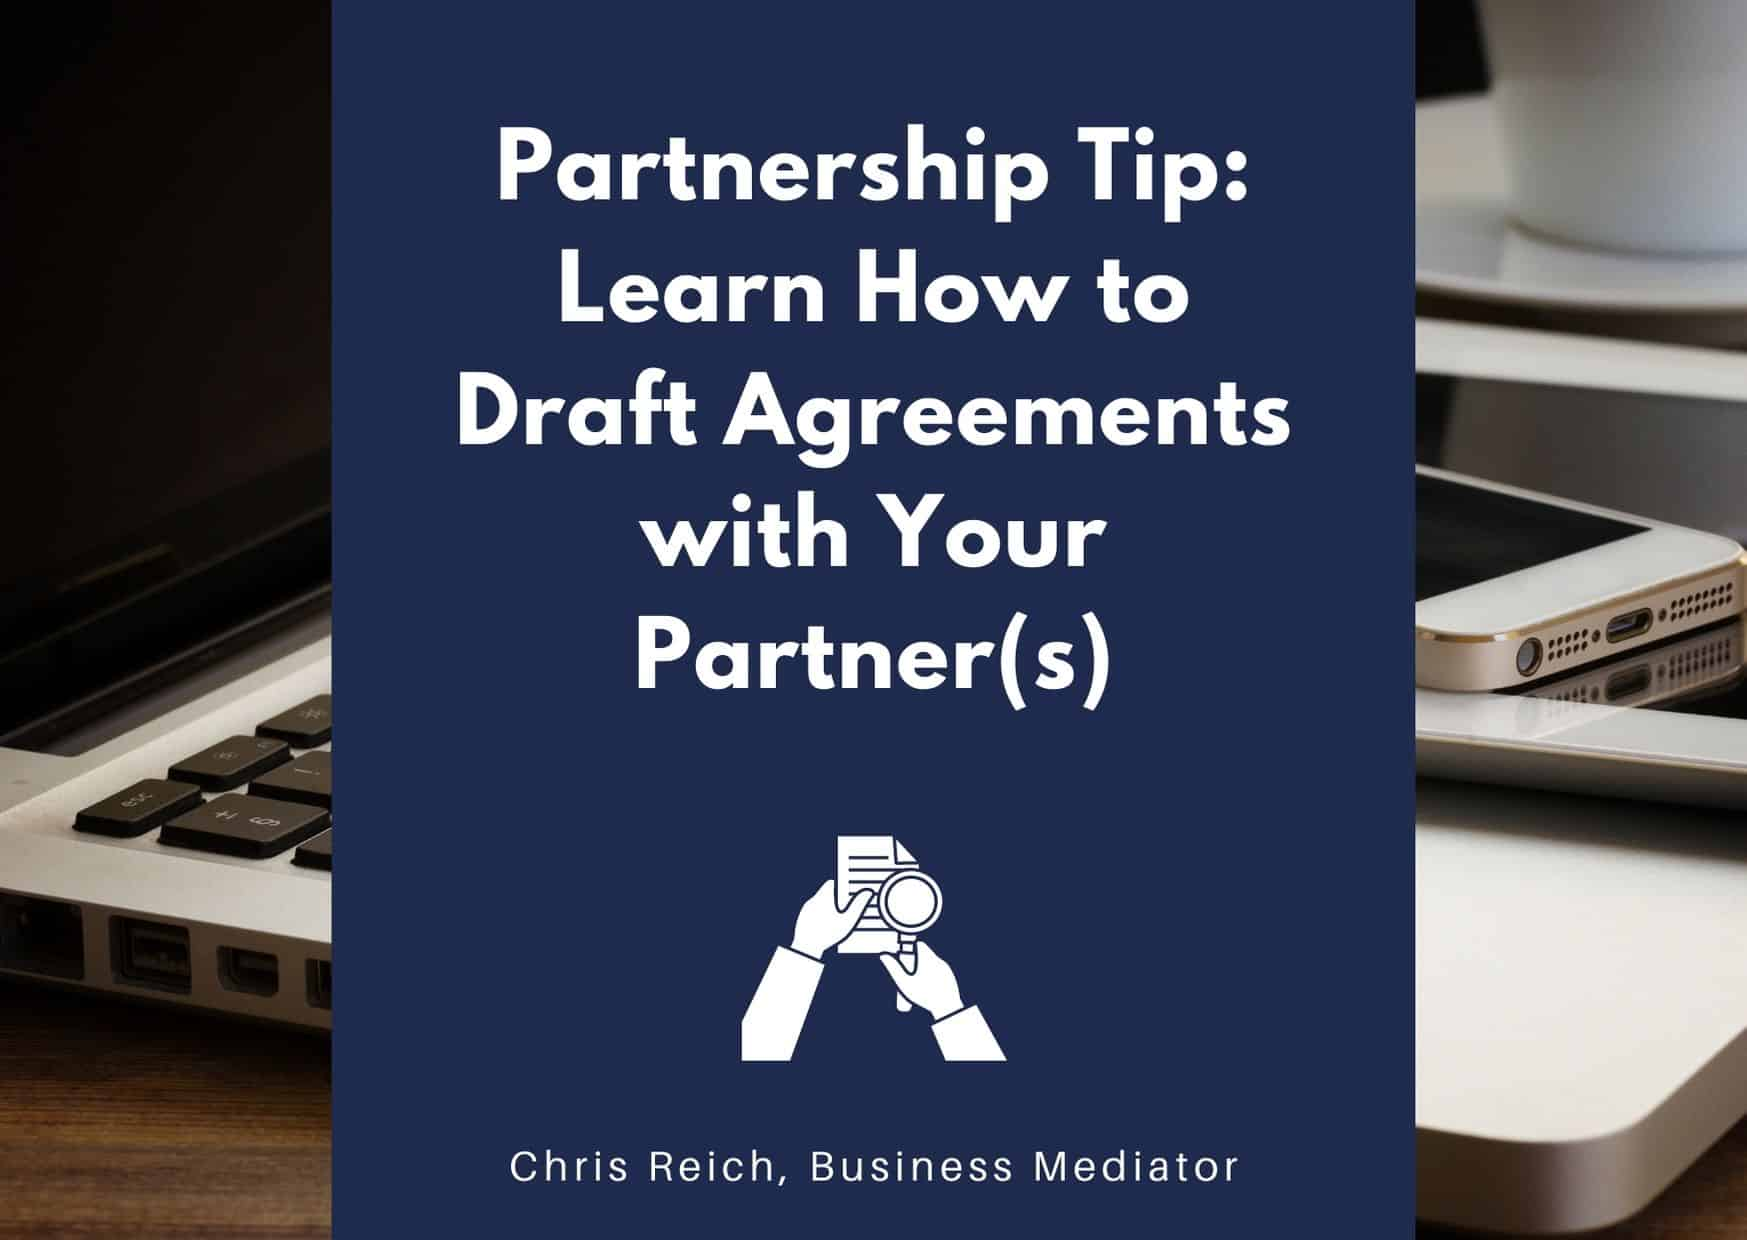 Learn How to Draft Agreements with Your Partner by Chris Reich